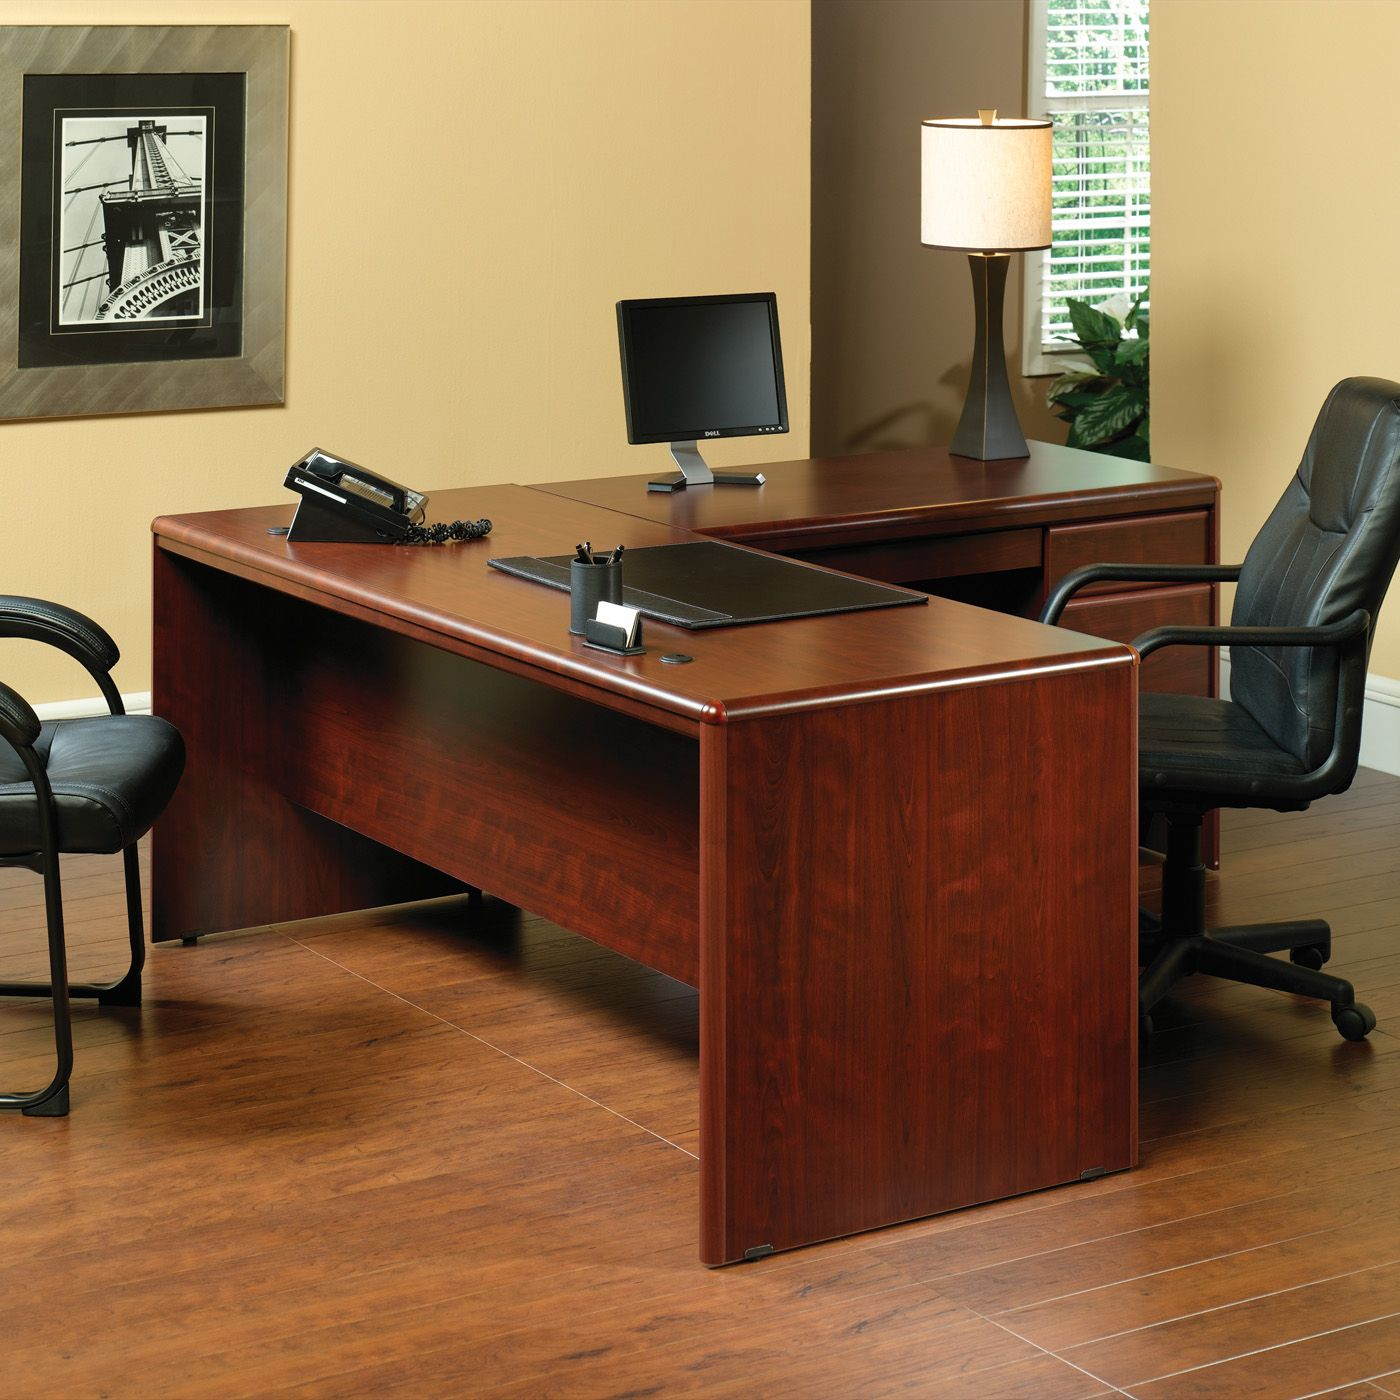 Shop Sauder Cornerstone L Shaped Executive Desk at ATG Stores